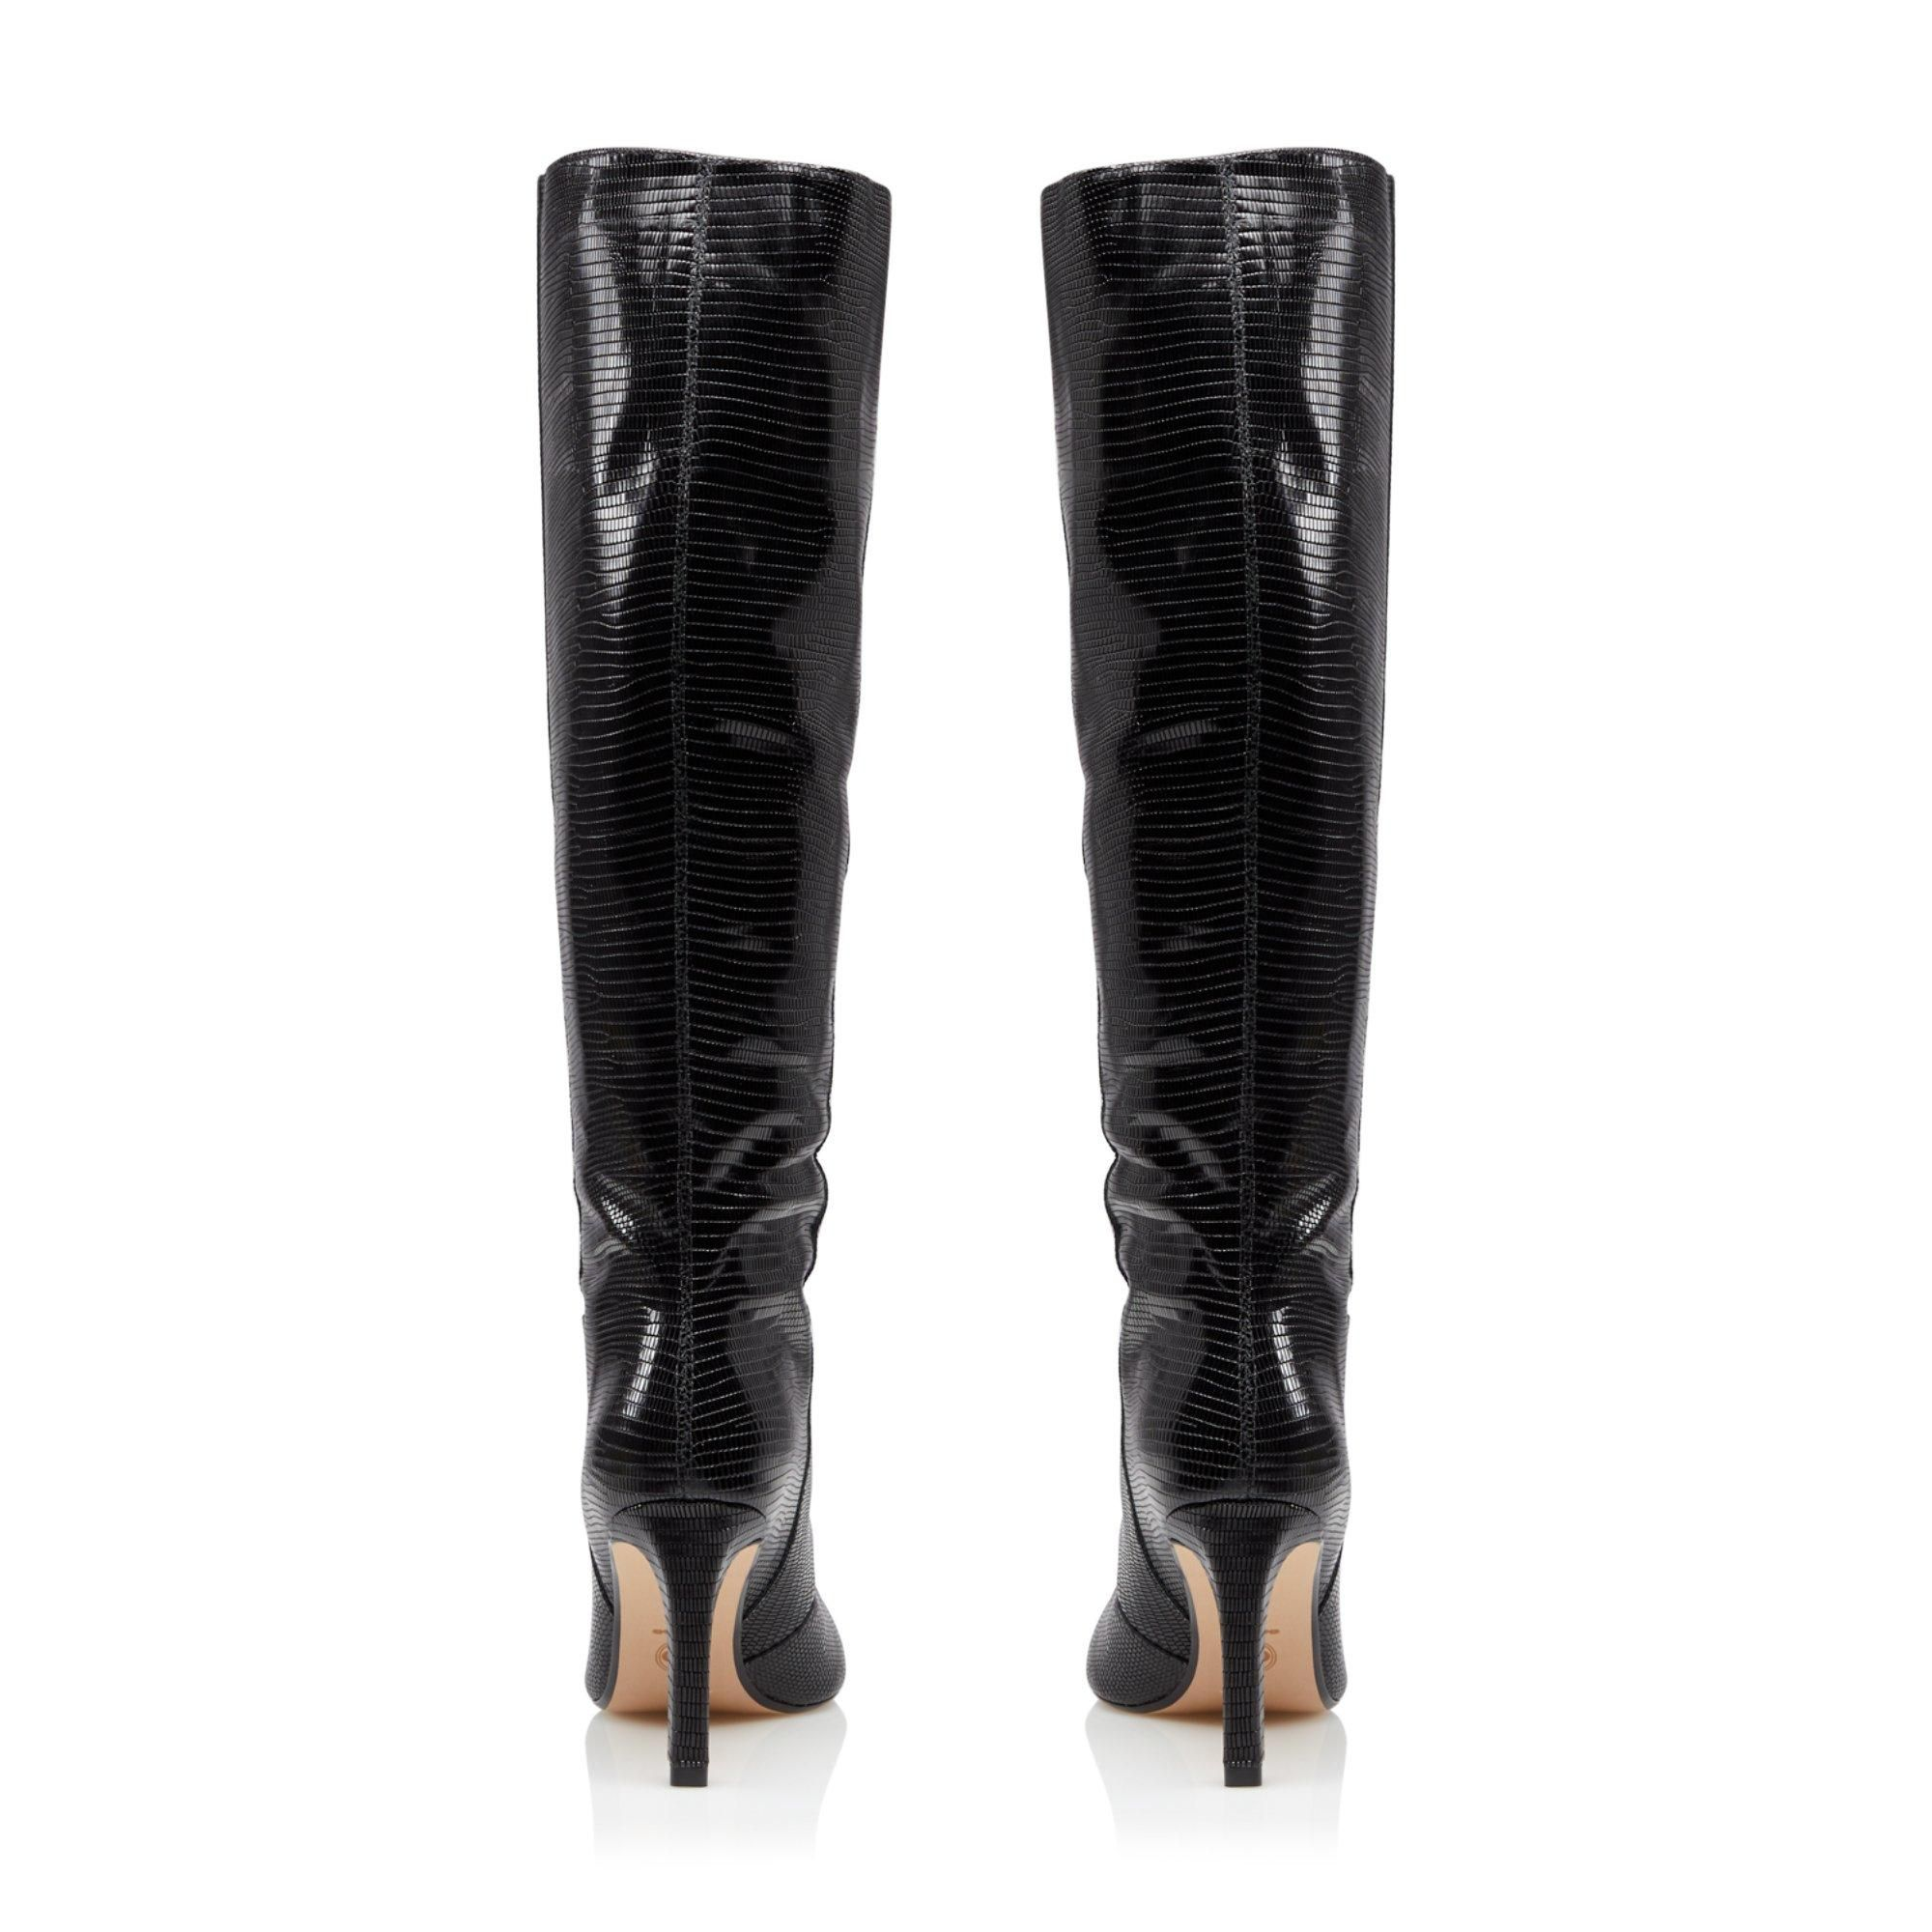 Dune Ladies SPICE Pointed Stiletto Knee High Heeled Boots